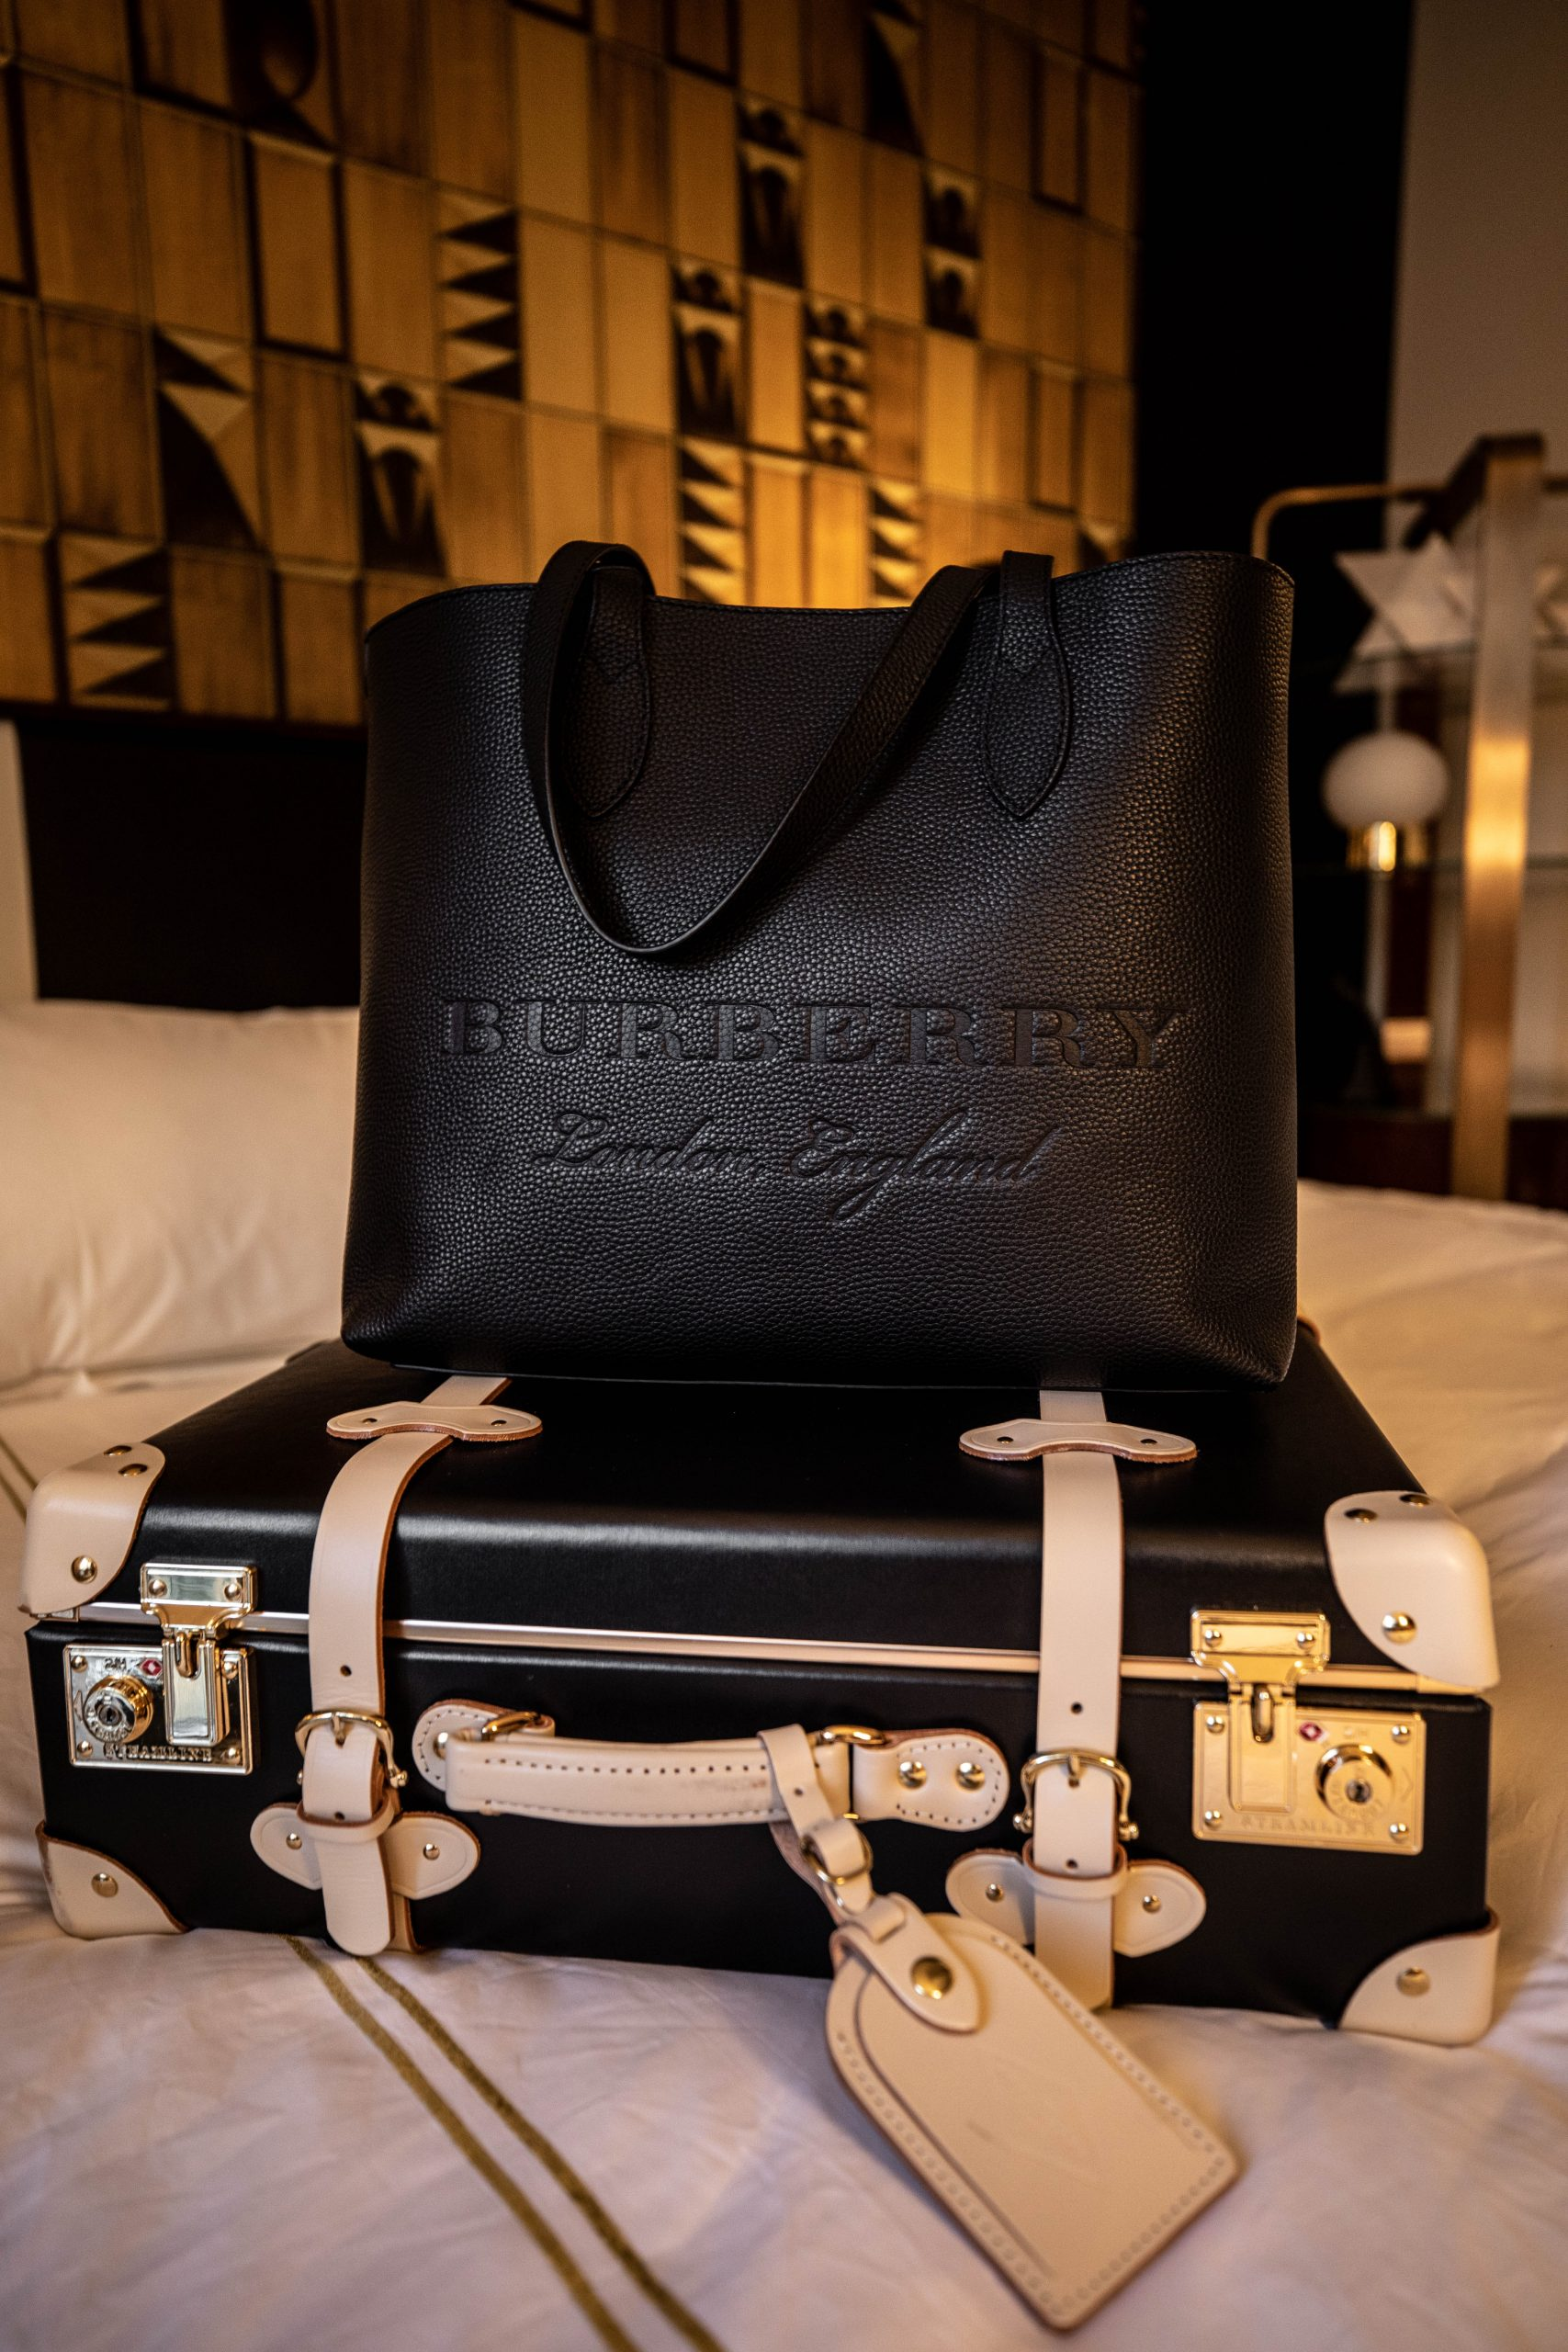 Steamline Luggage at Viceroy Chicago Hotel with Burberry Leather Tote Bag by Annie Fairfax